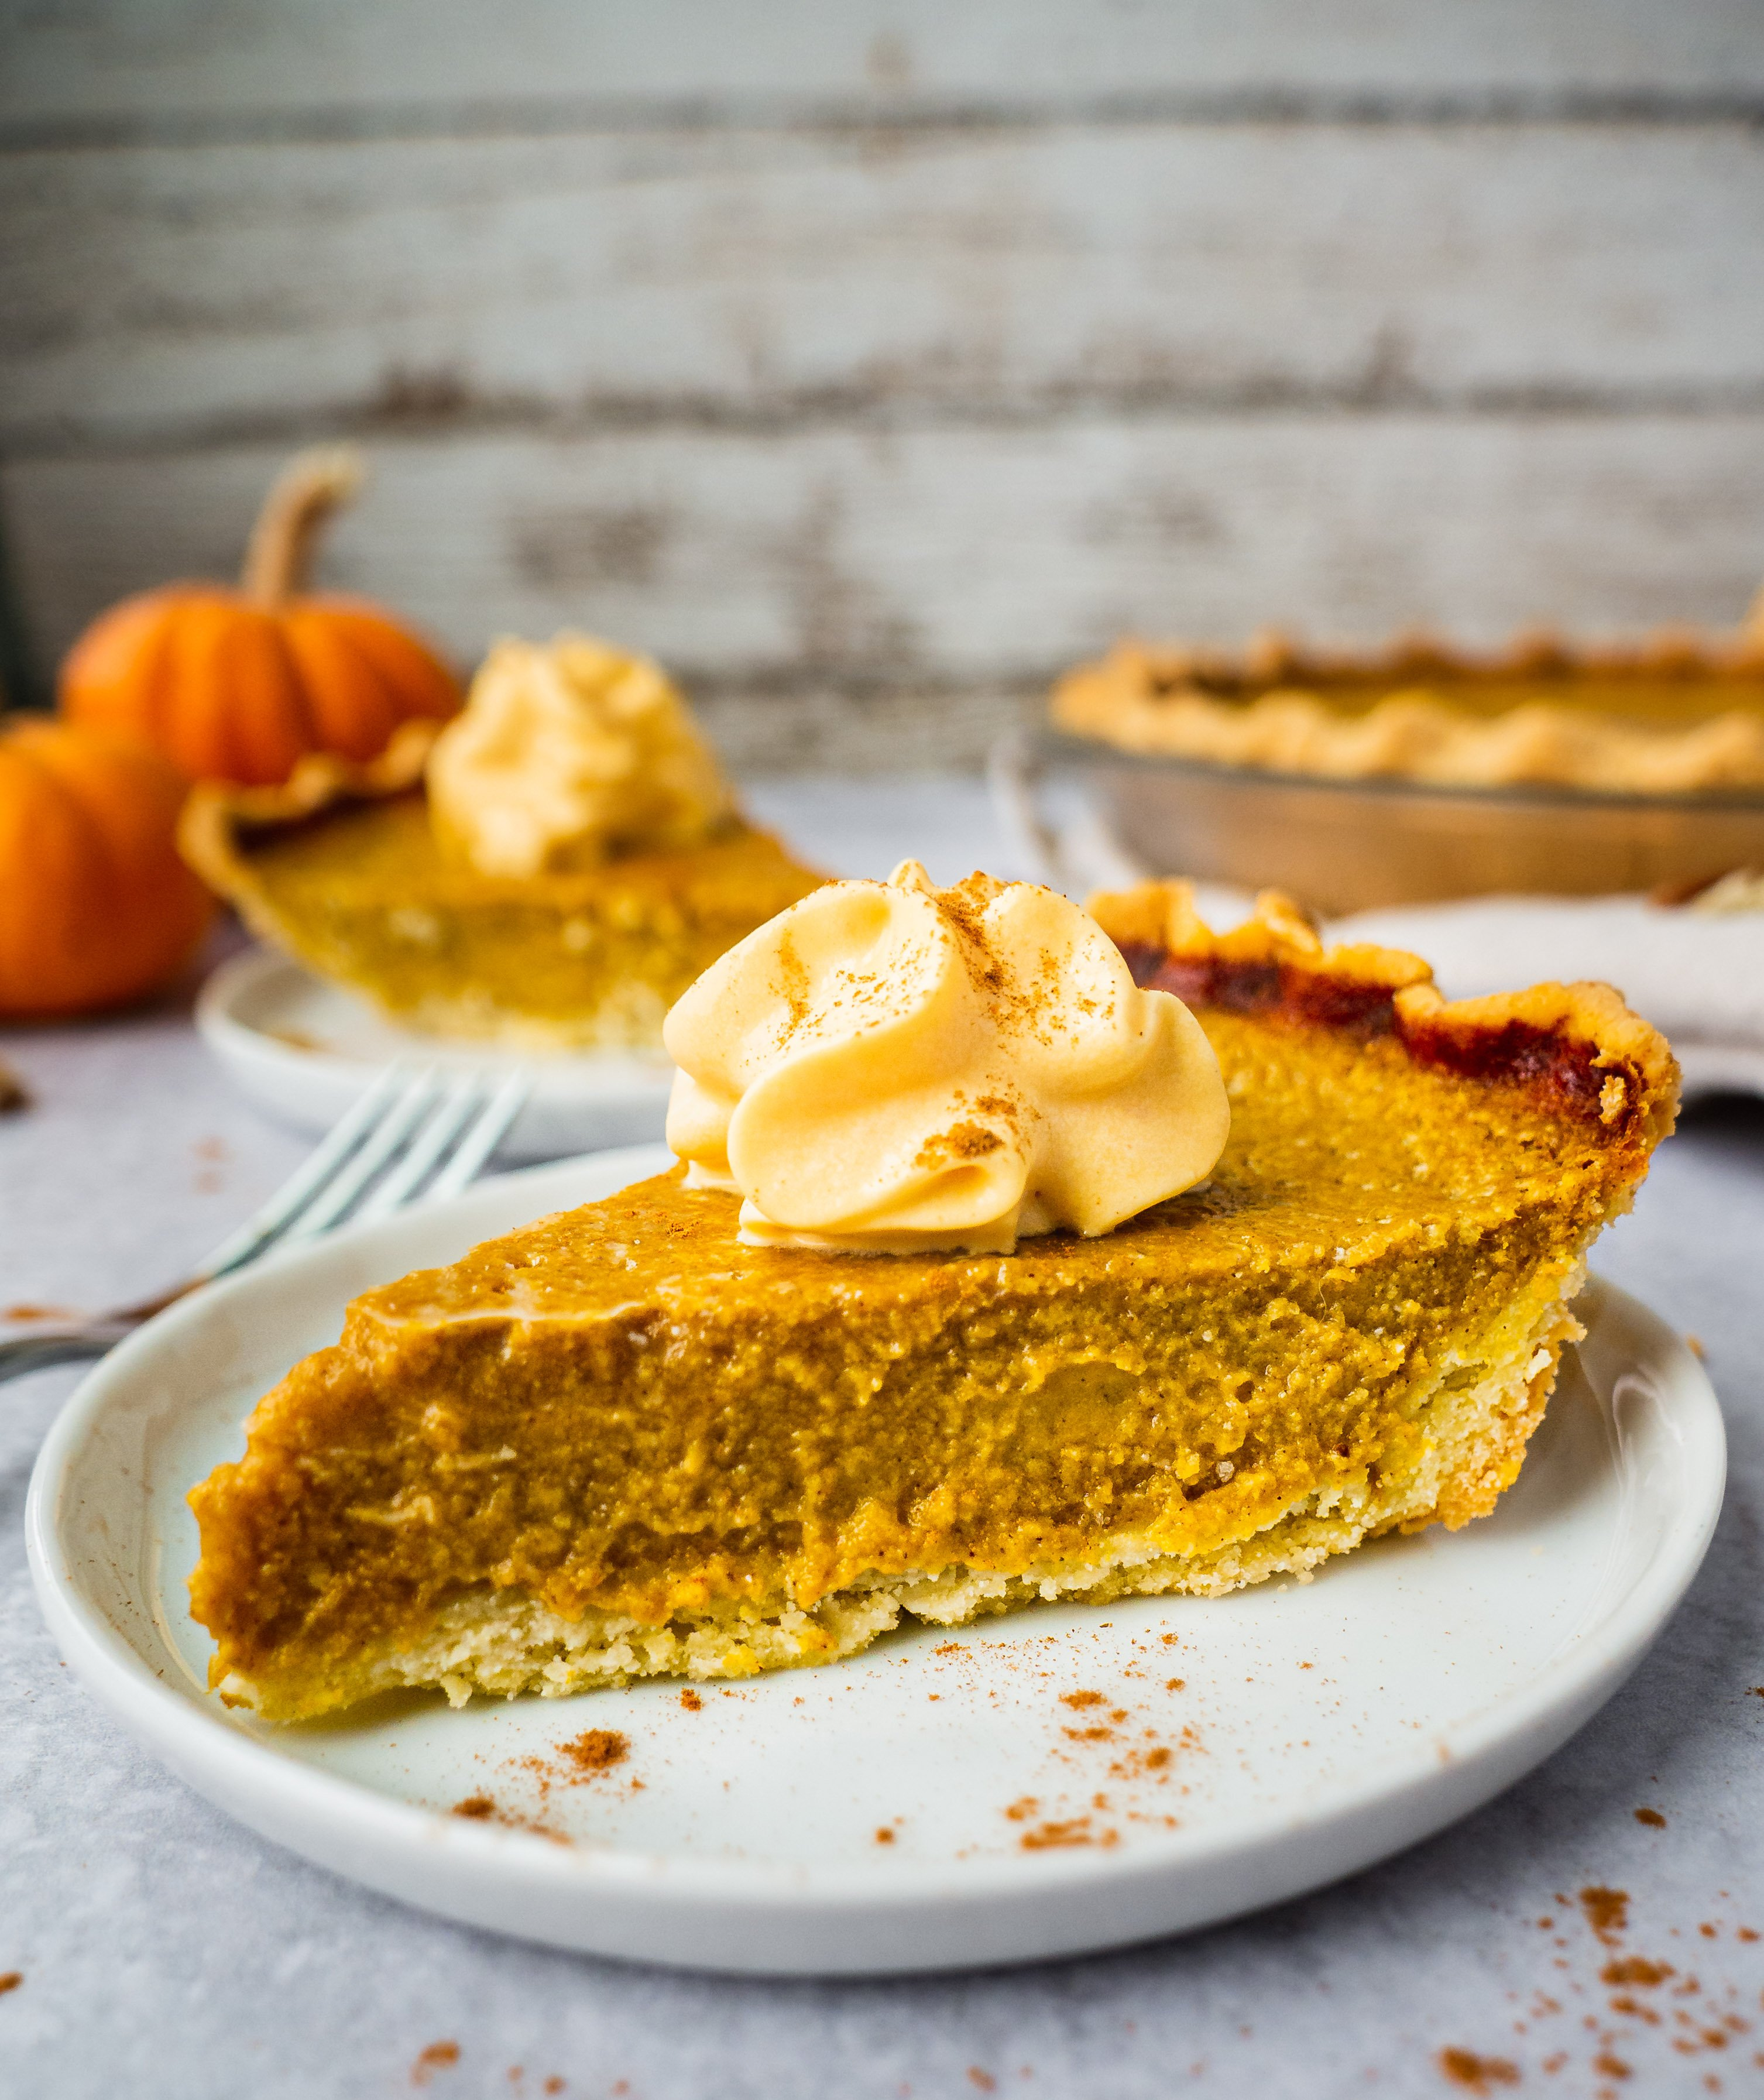 a piece of homemade pumpkin pie made with sweet, buttery and flaky gluten free pie crust.